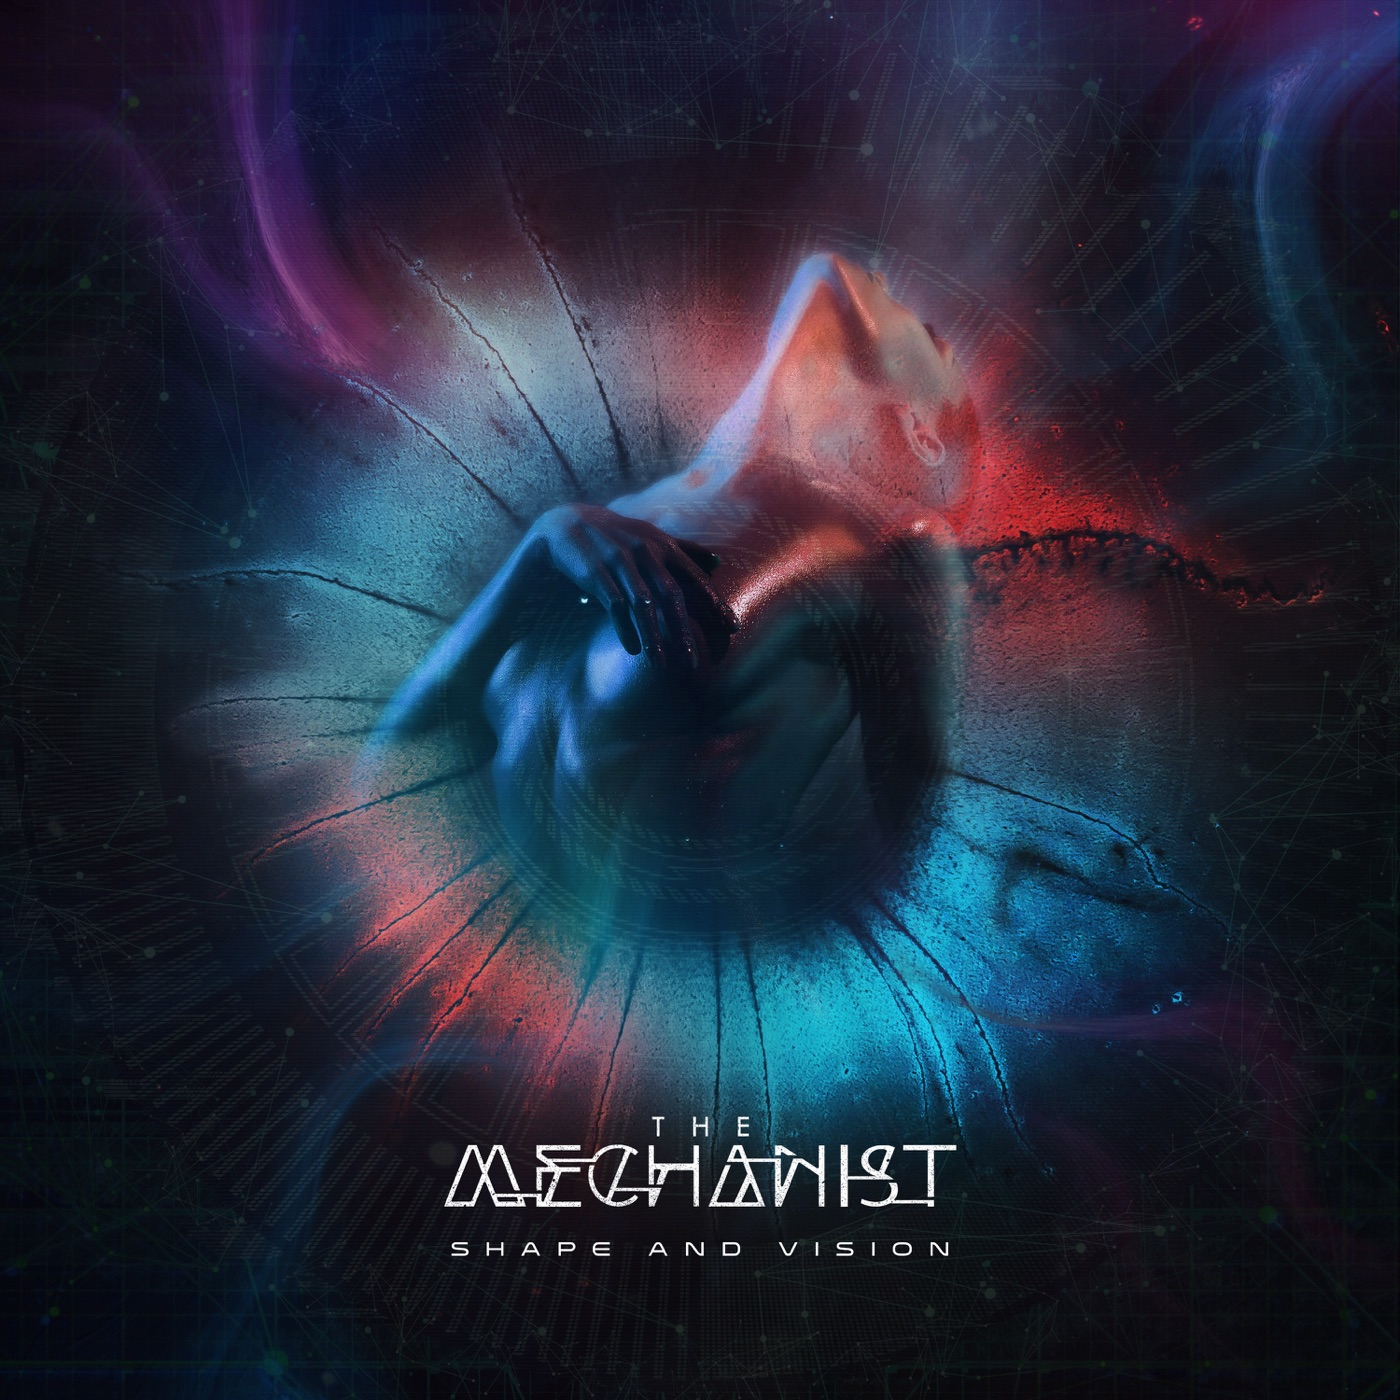 The Mechanist - Shape and Vision [EP] (2019)